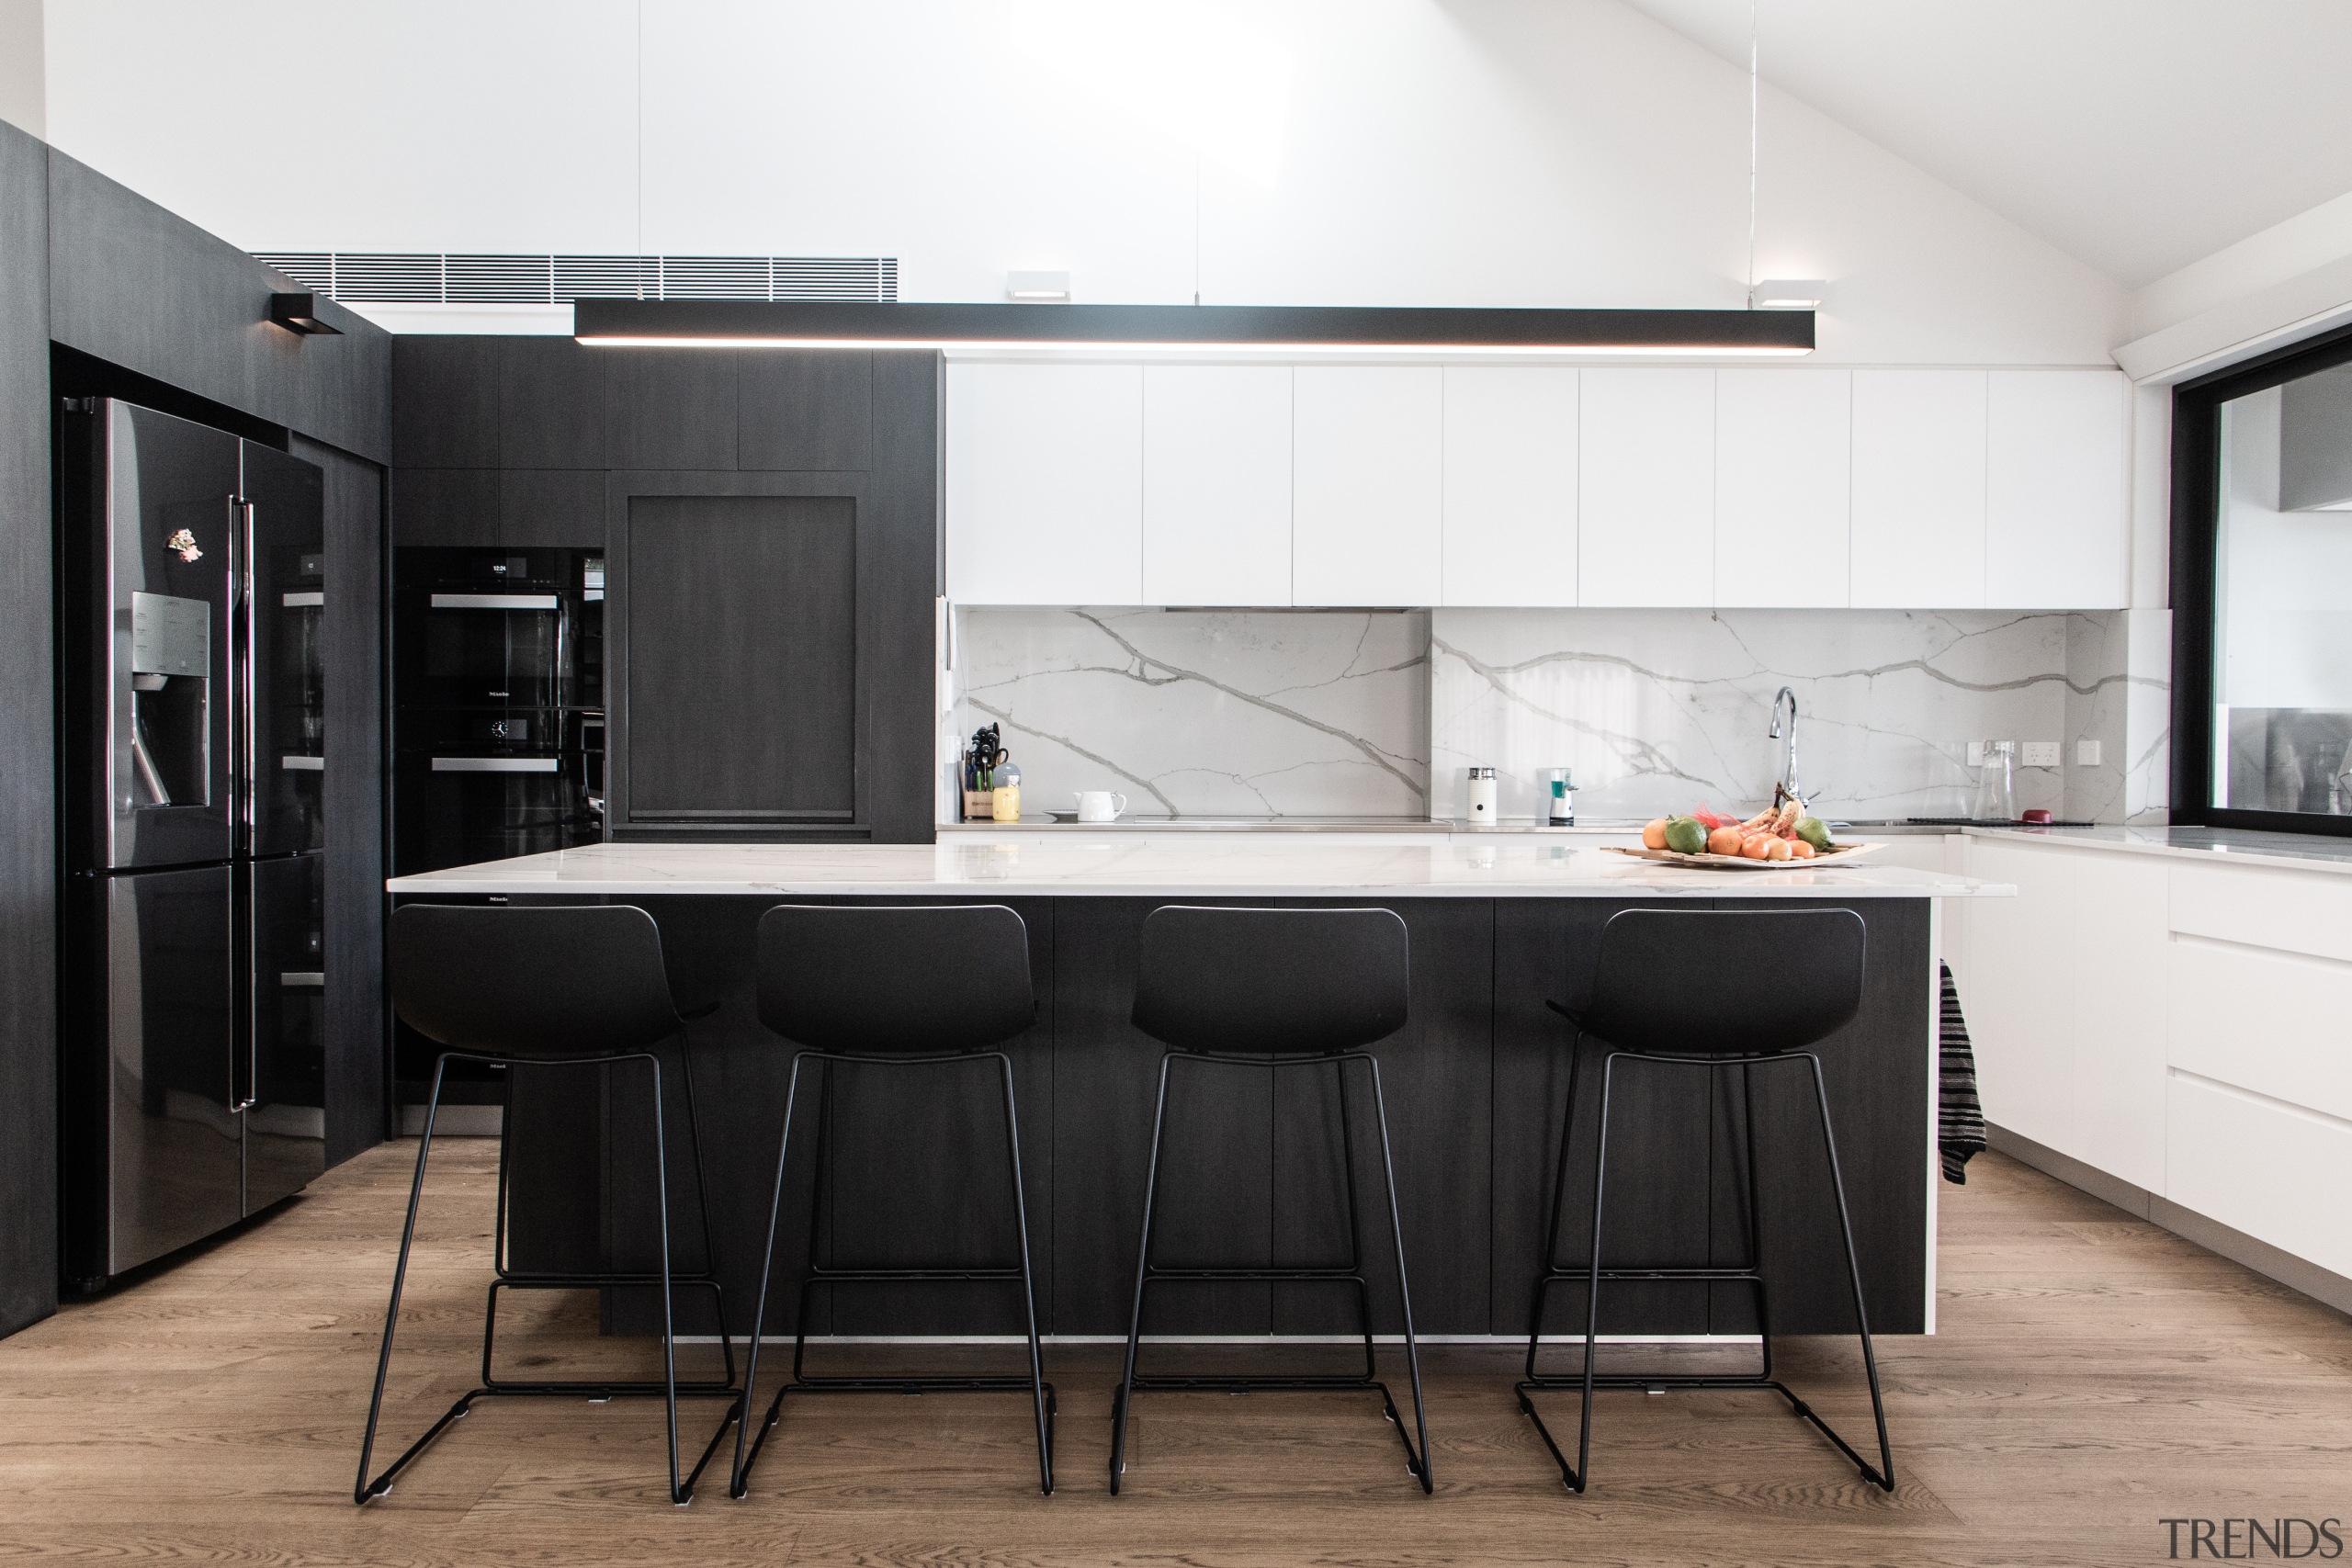 A central island provides definition and boundaries between architecture, black-and-white, building, cabinetry, ceiling, countertop, cupboard, design, dining room, floor, flooring, furniture, home, house, interior design, kitchen, kitchen stove, loft, material property, property, real estate, room, table, white, black